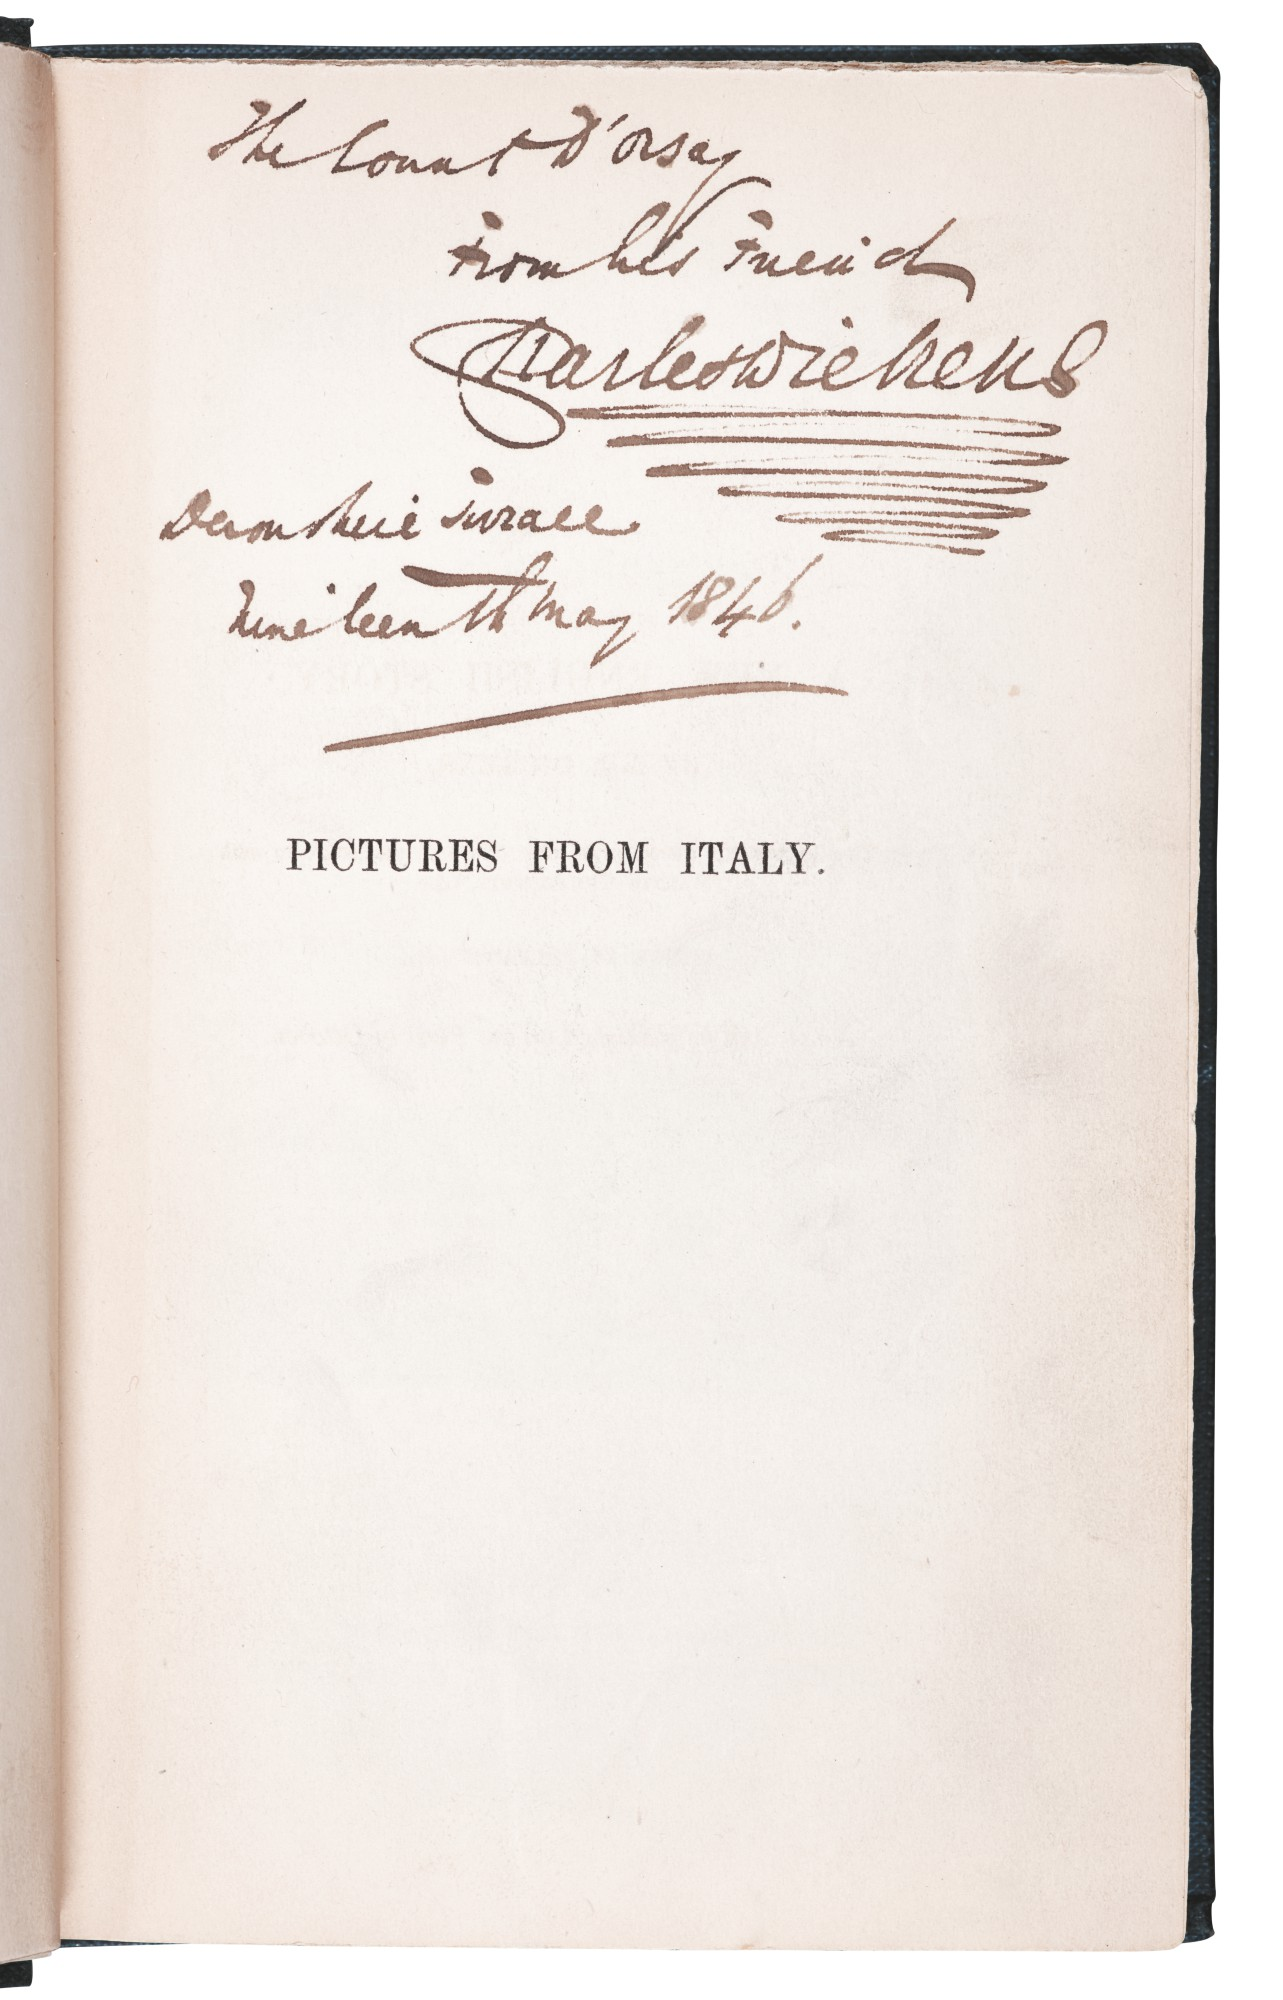 Dickens, Pictures from Italy, 1846, first edition, presentation copy inscribed to Count d'Orsay